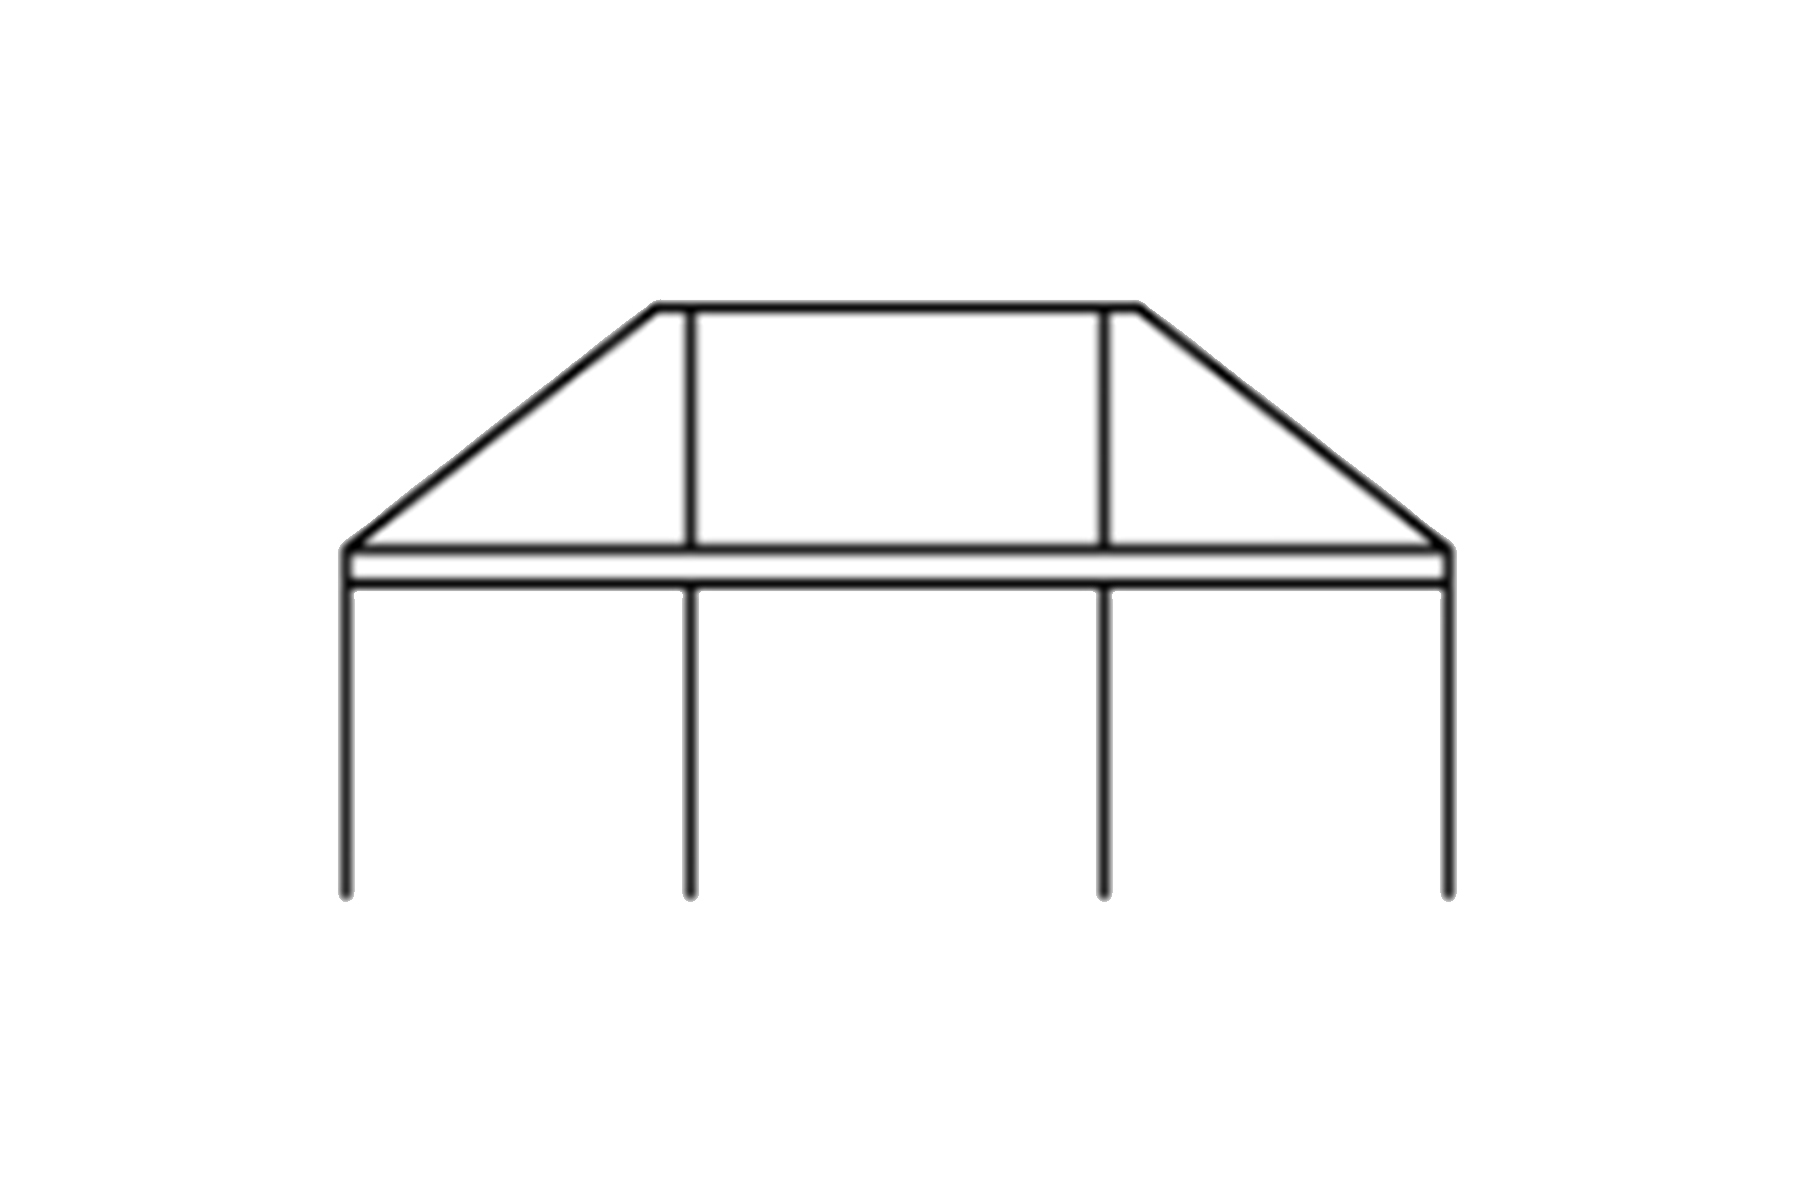 10 x 10 Frame Tent